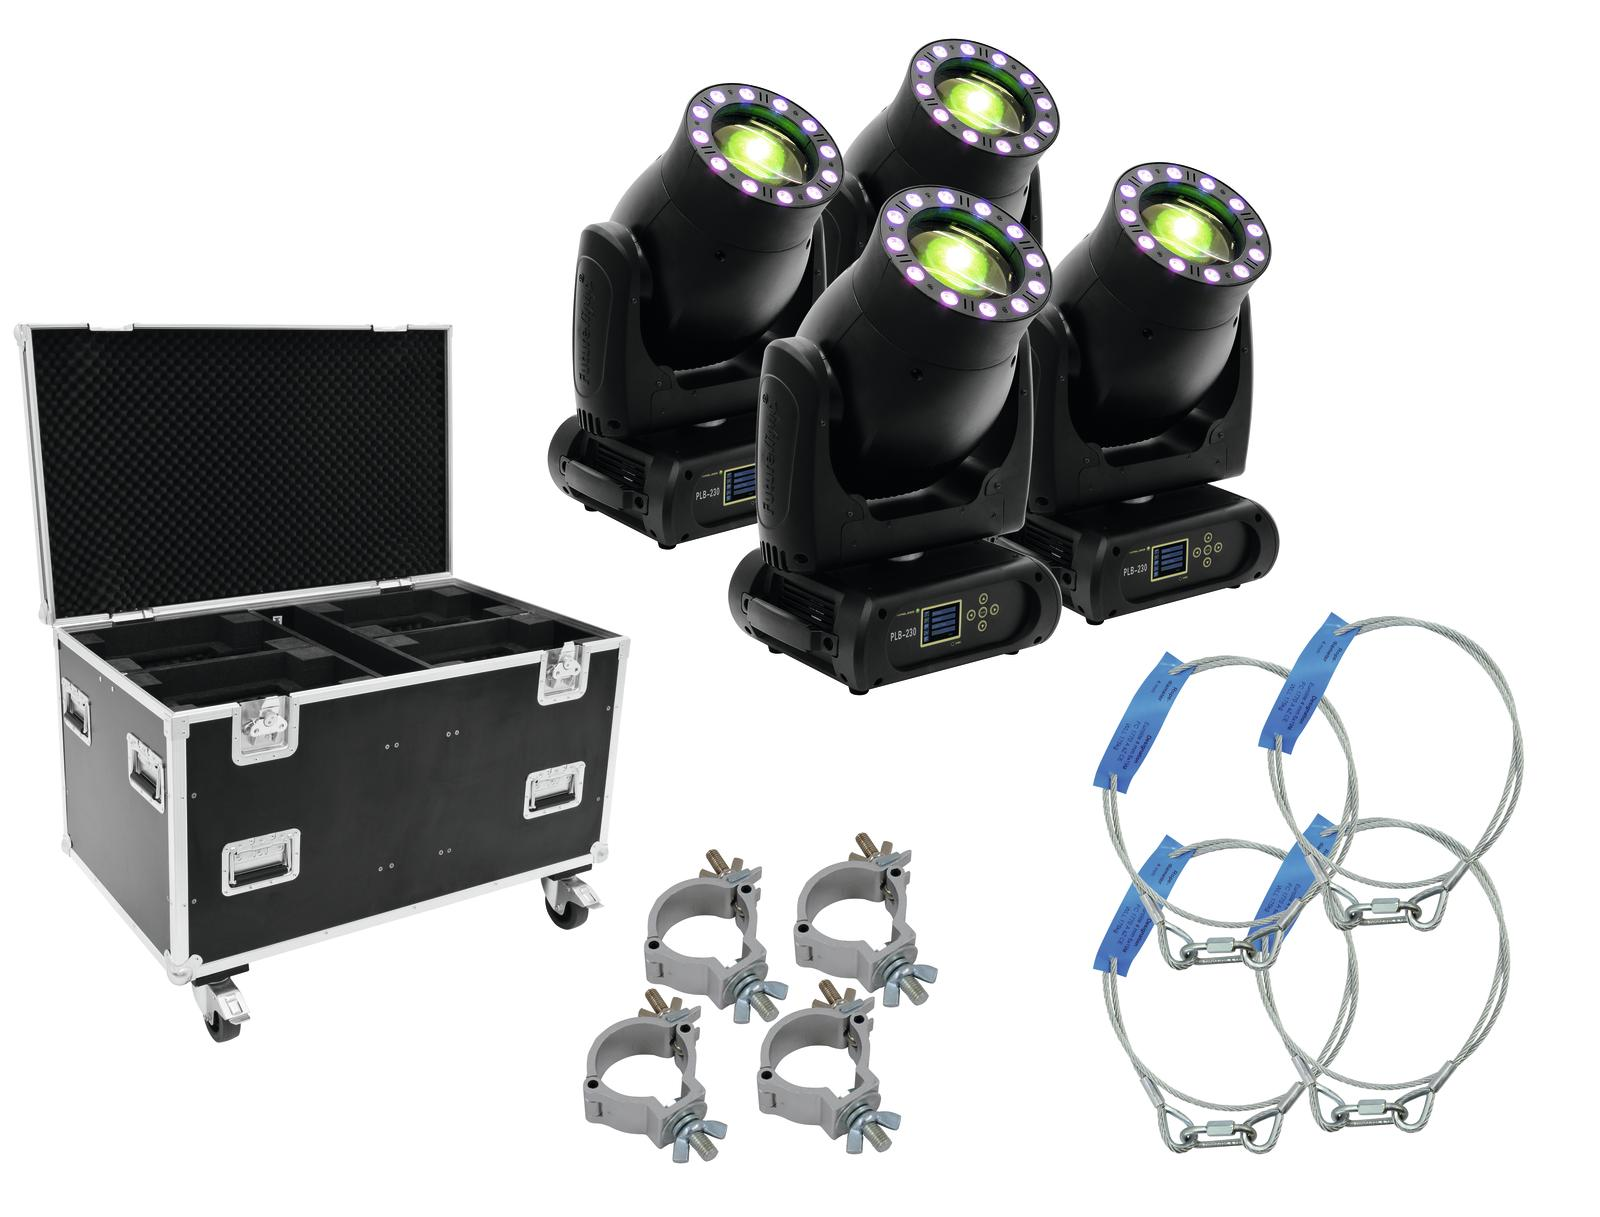 FUTURELIGHT Set 4x PLB-230 + c